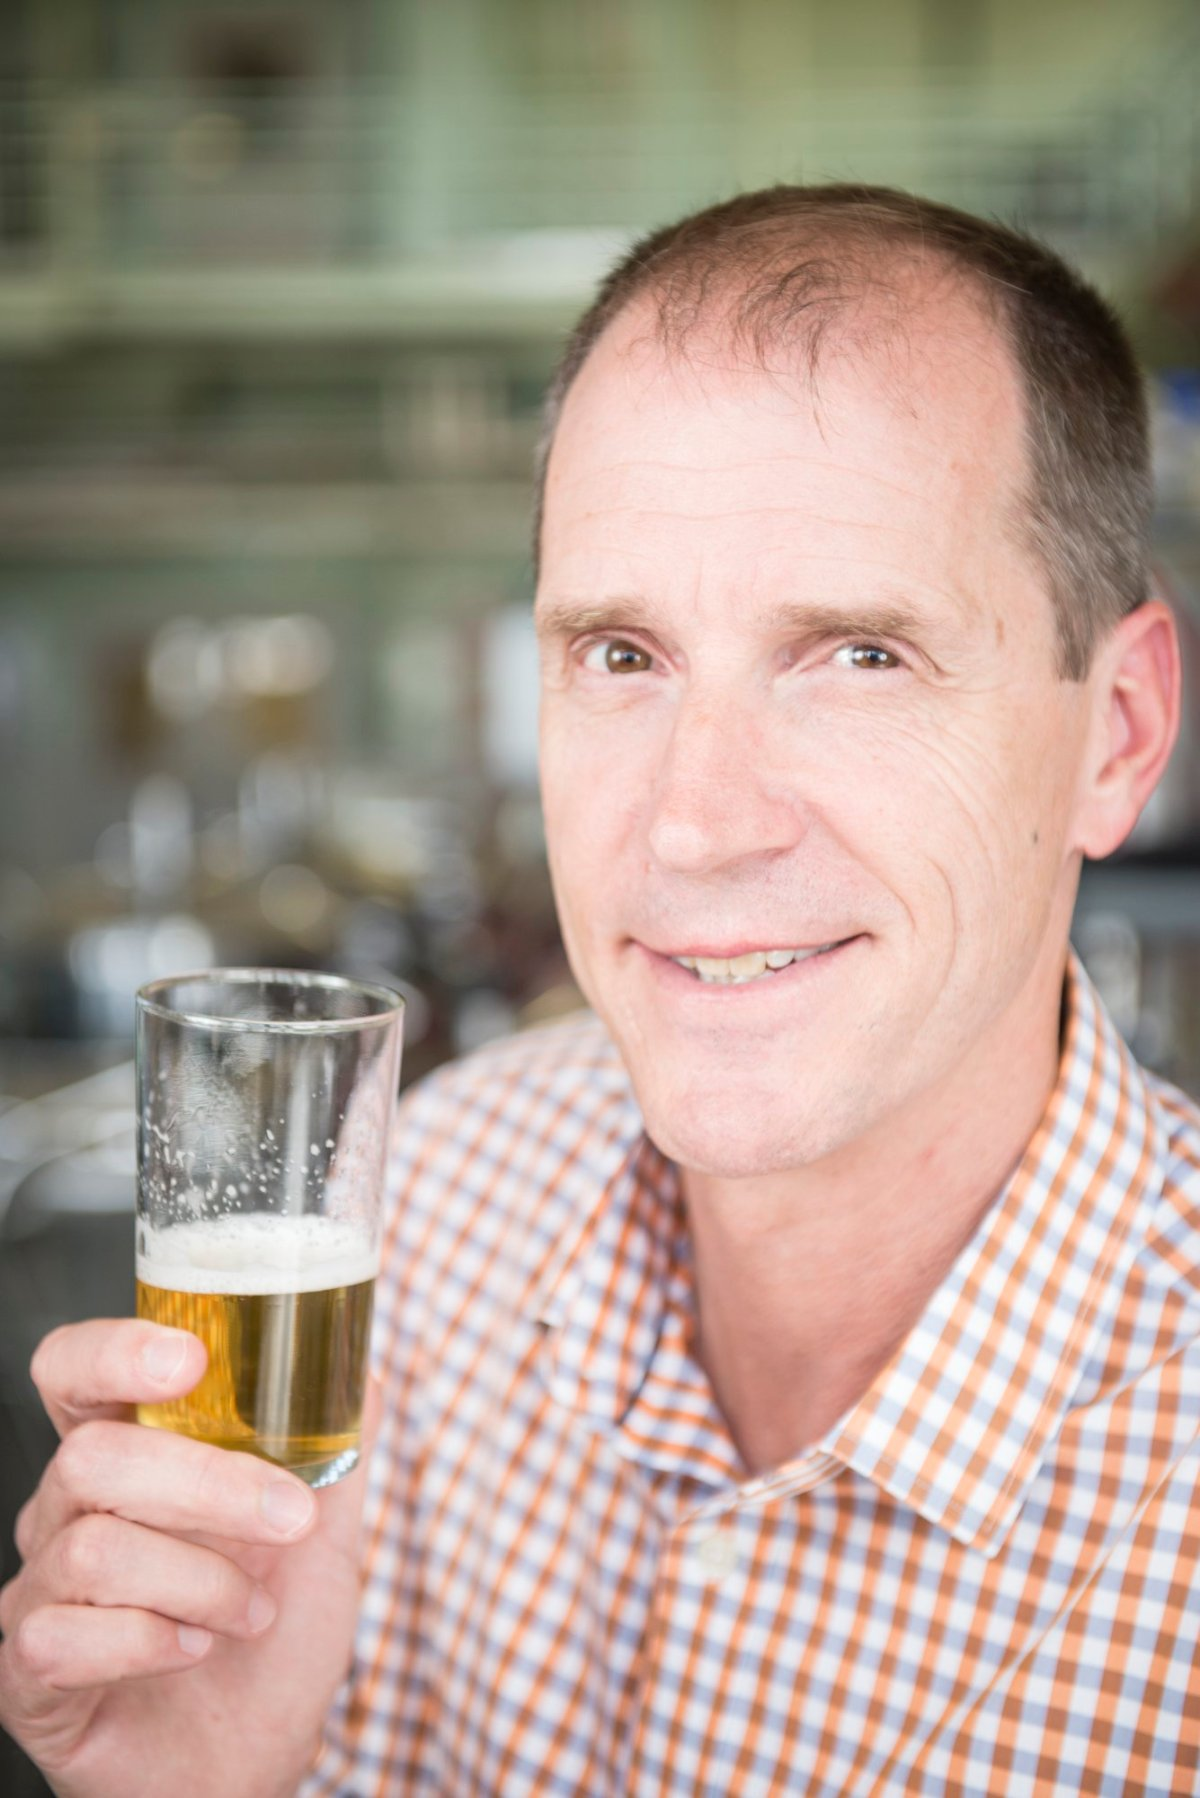 Tom Shellhammer runs sensory evaluations on beer